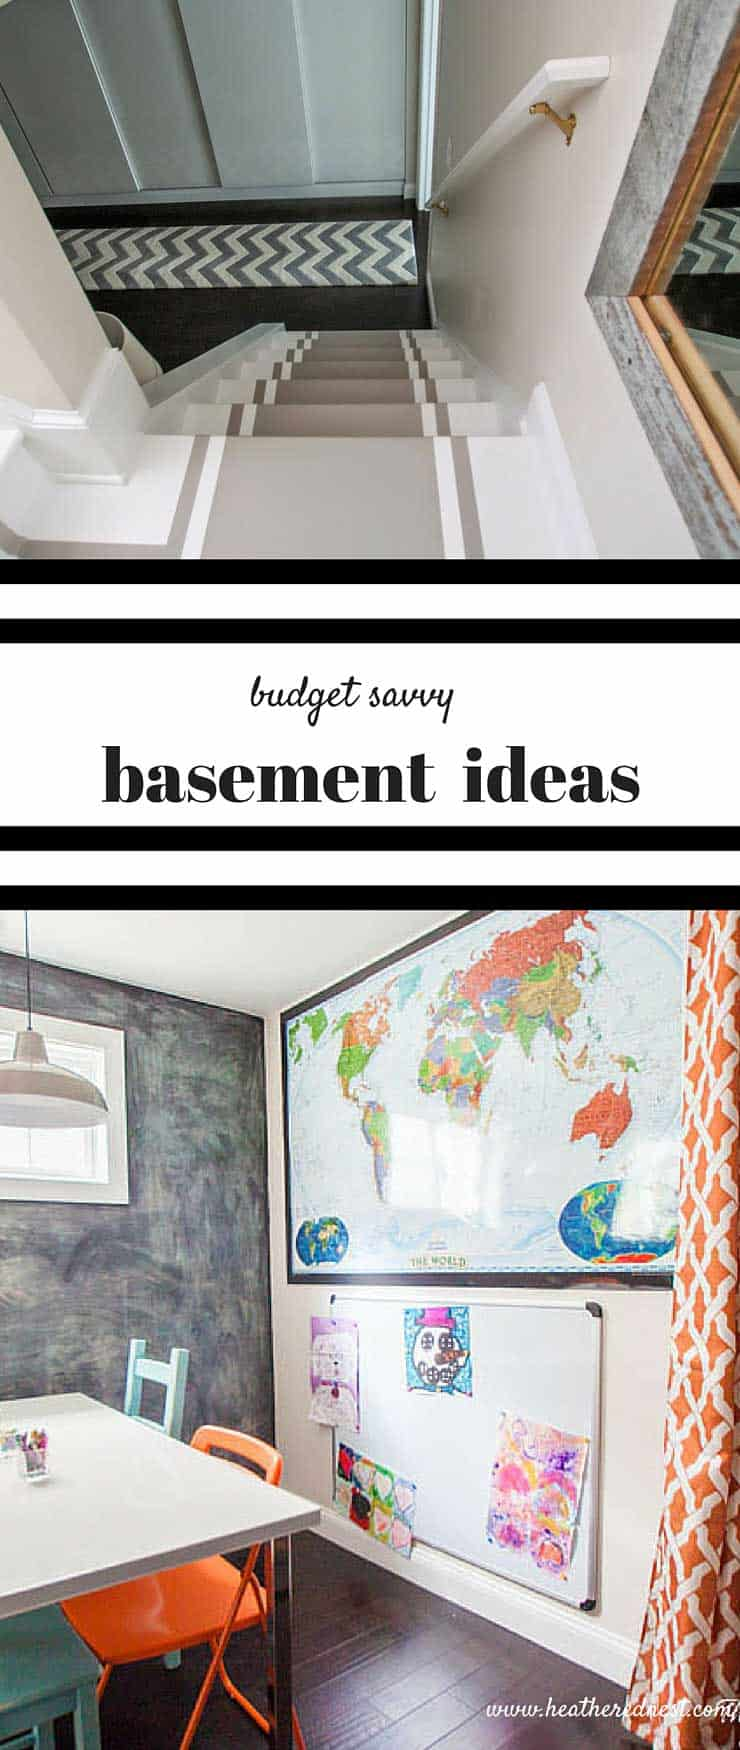 Great article with budget conscious basement ideas. Basement renovations can be very expensive. This post has awesome tips for tackling a basement makeover with DIY projects and budget friendly materials and design ideas!! Complete source list is super helpful too!! from www.heatherednest.com